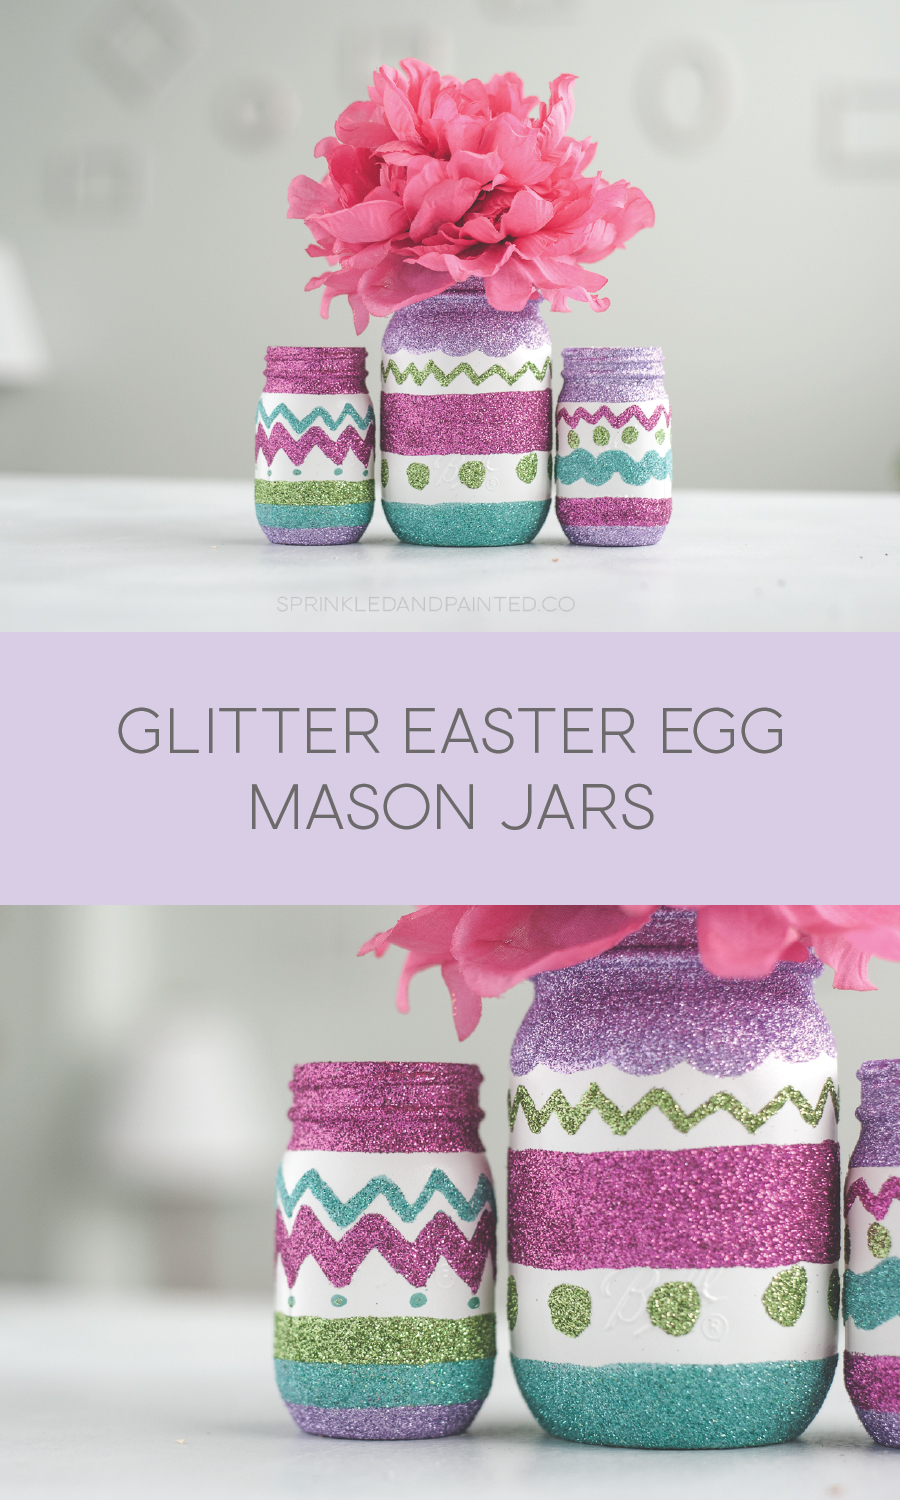 Glitter Easter egg mason jar decor.